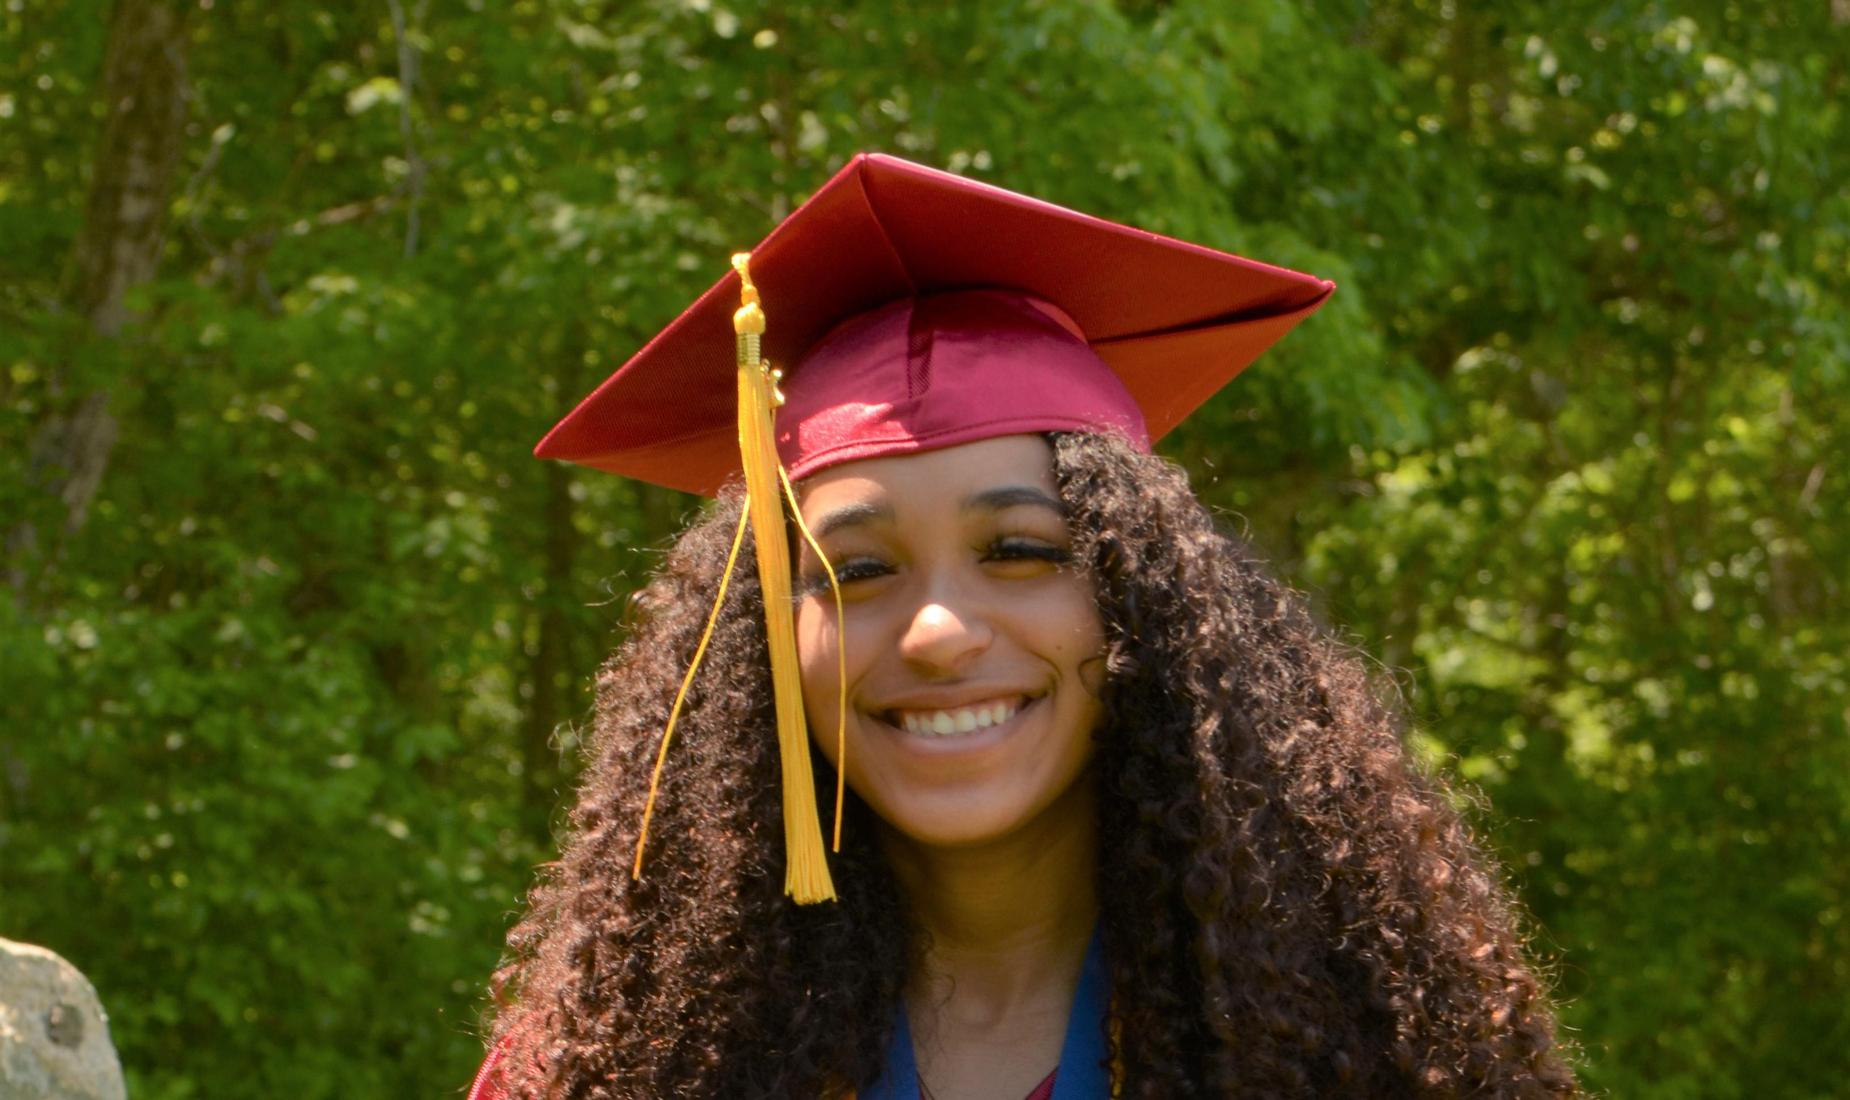 GLCPS graduate in cap and gown